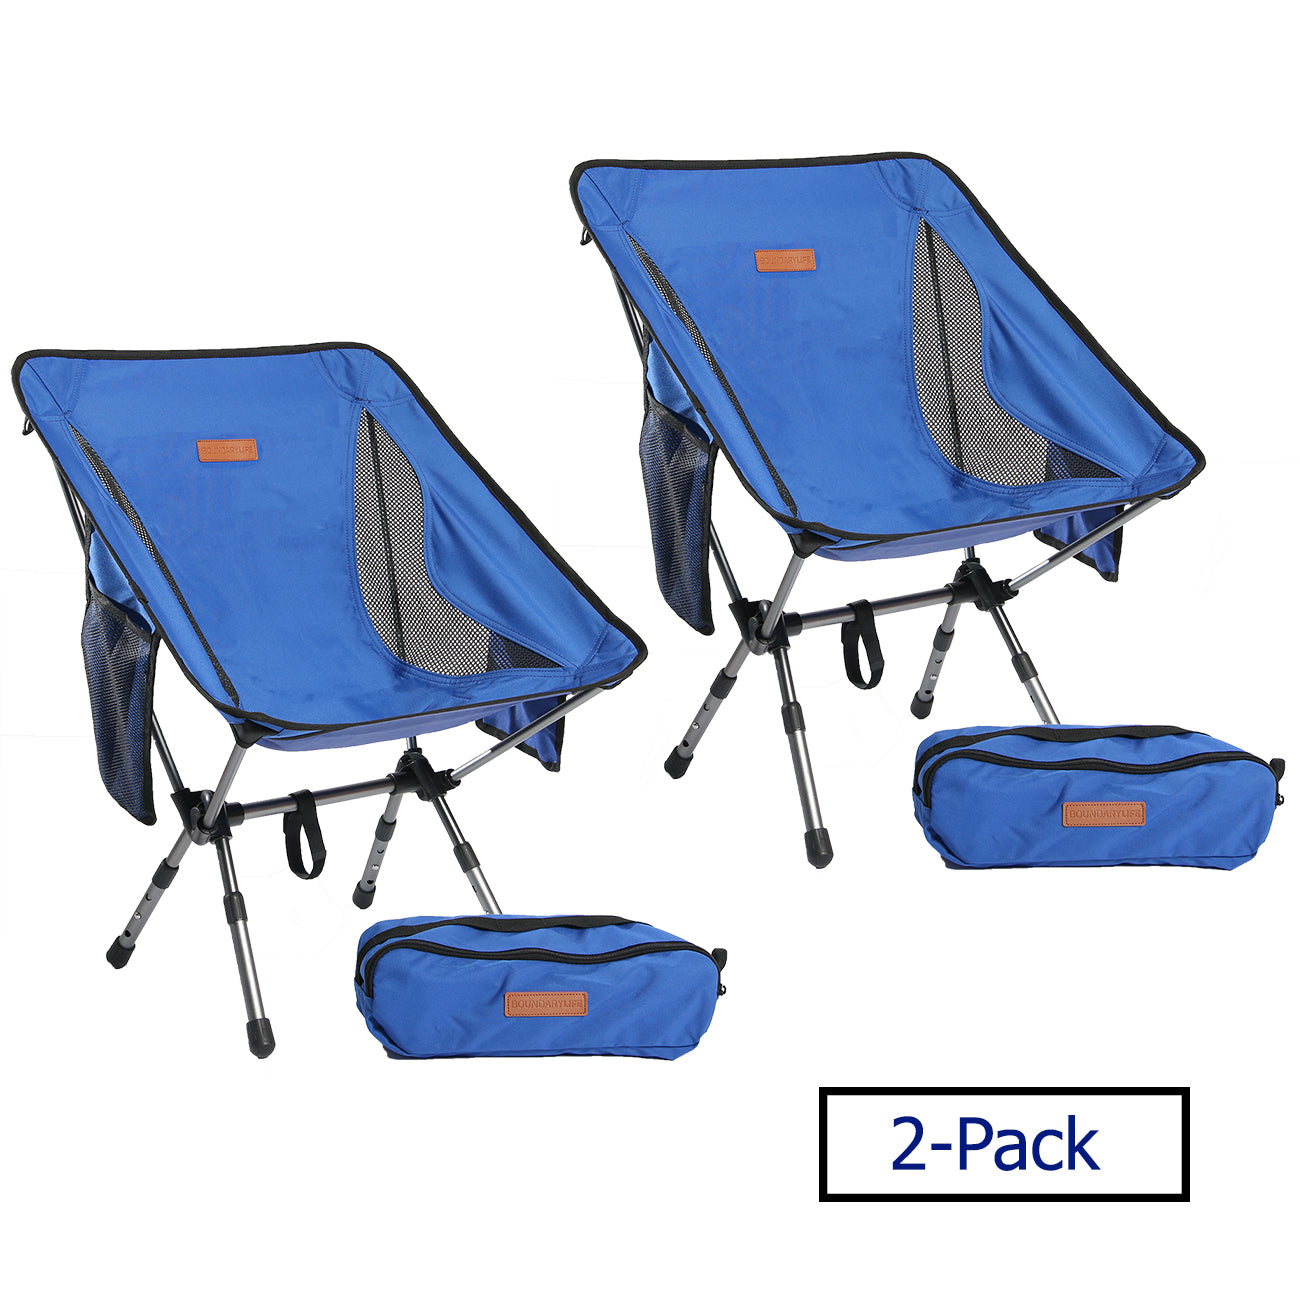 Camping Chair - 2-Pack Blue lightweight chairs